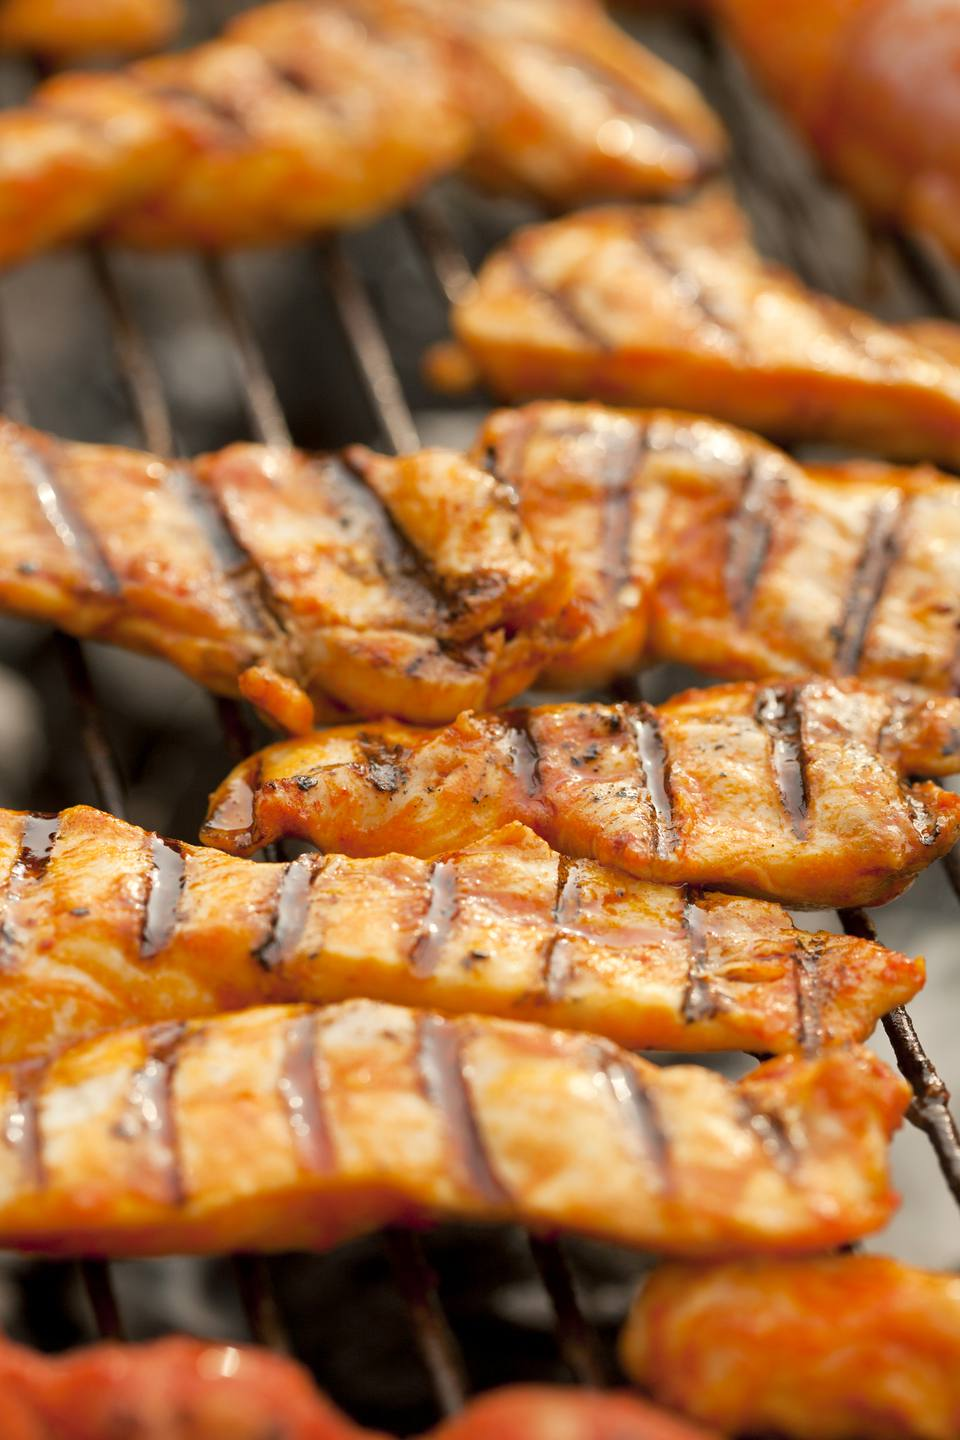 Grilled meat, marinated turkey breast on a grill